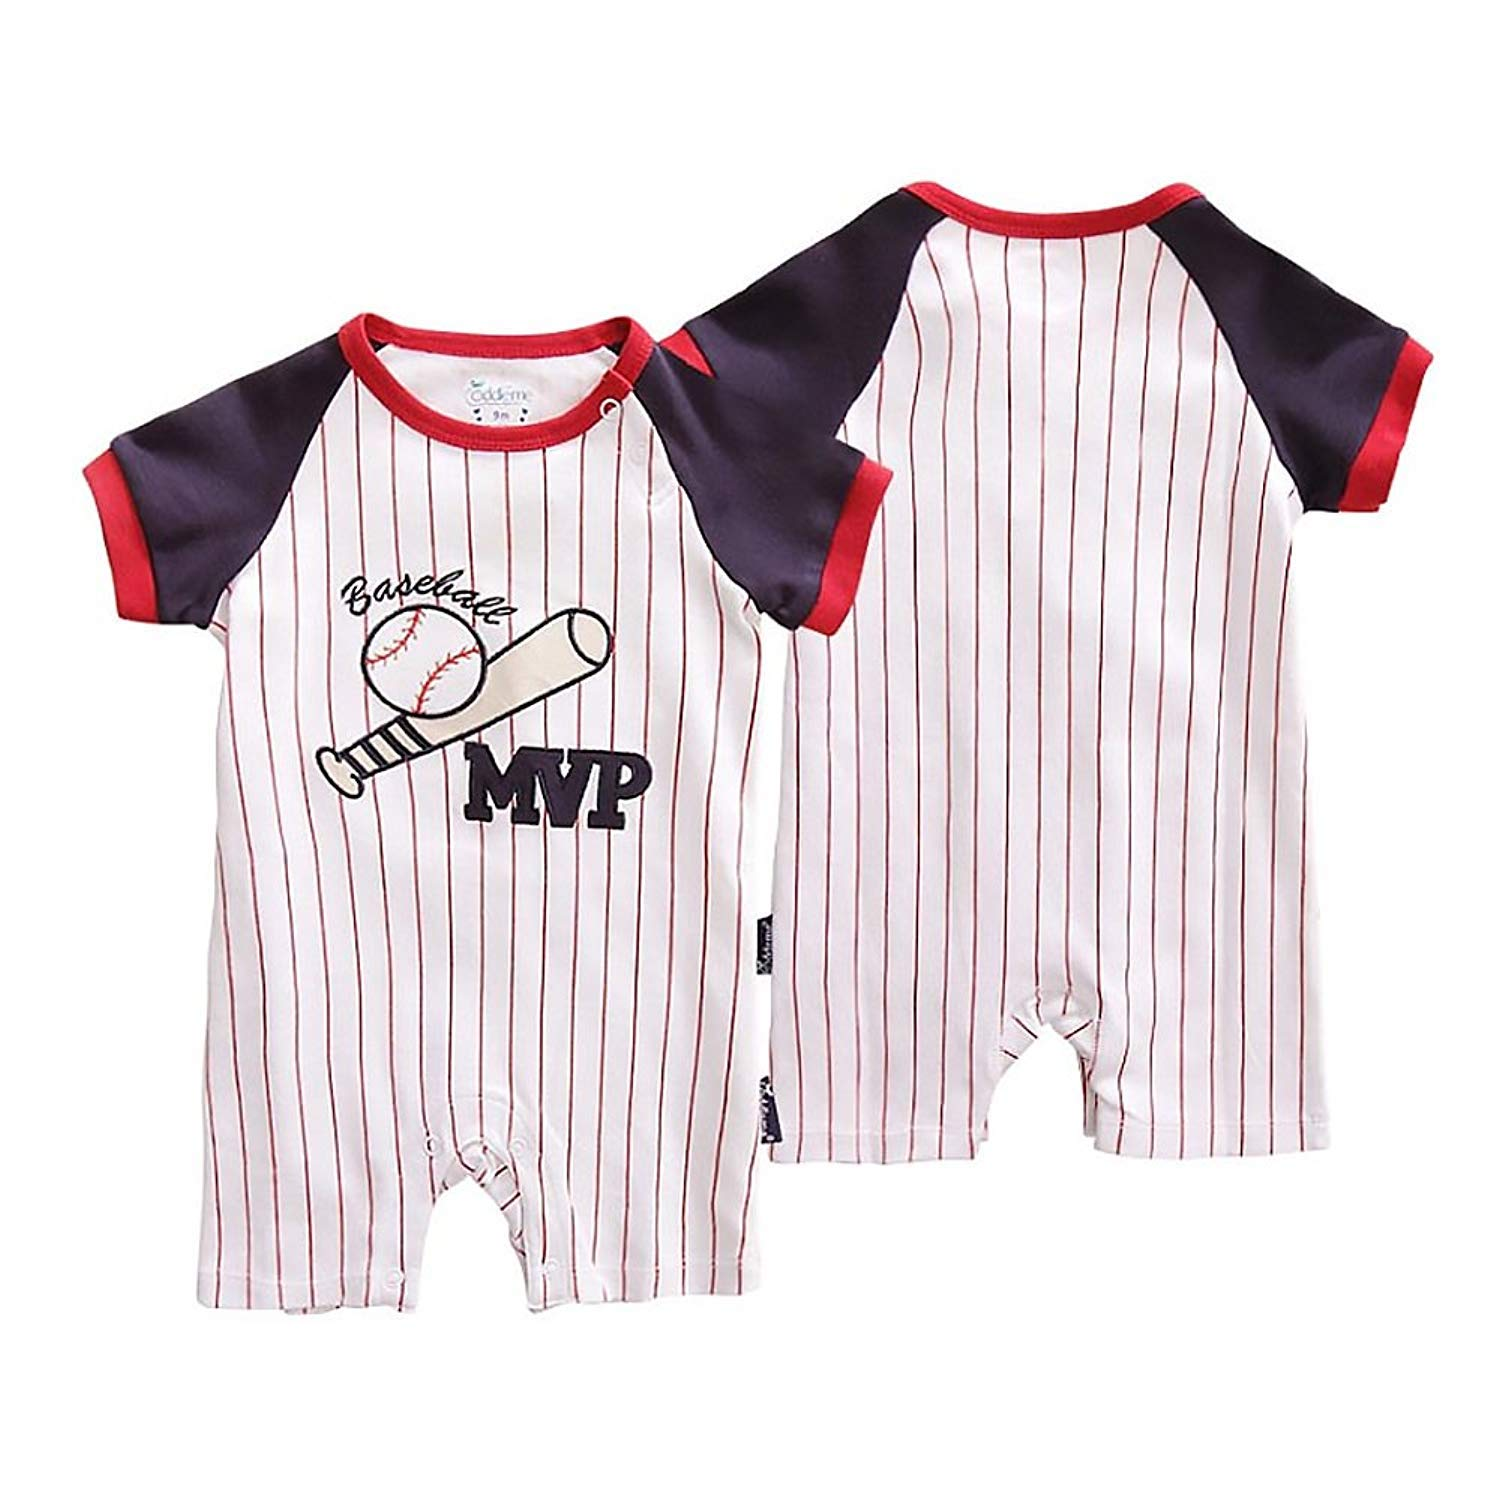 6a28a582ad4 Amazon.com   Nicedeal Baby Girl Coverall Summer Kids Rompers Boy Bodysuits  Newborn Jumpers Playsuit Infant Outfits for 80cm Baseball MVP Baby Tools  for ...